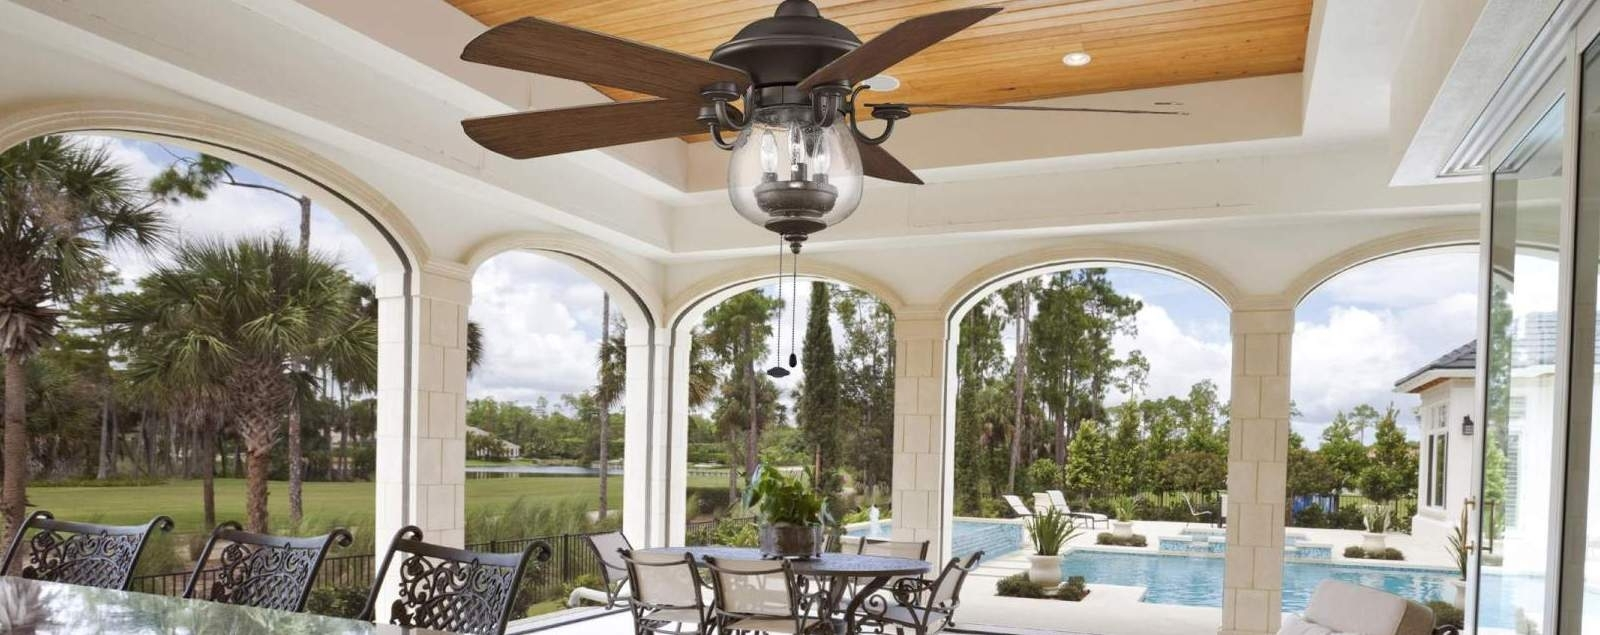 Latest Mission Style Outdoor Ceiling Fans With Lights Intended For Outdoor Ceiling Fans – Shop Wet, Dry, And Damp Rated Outdoor Fans (Gallery 17 of 20)